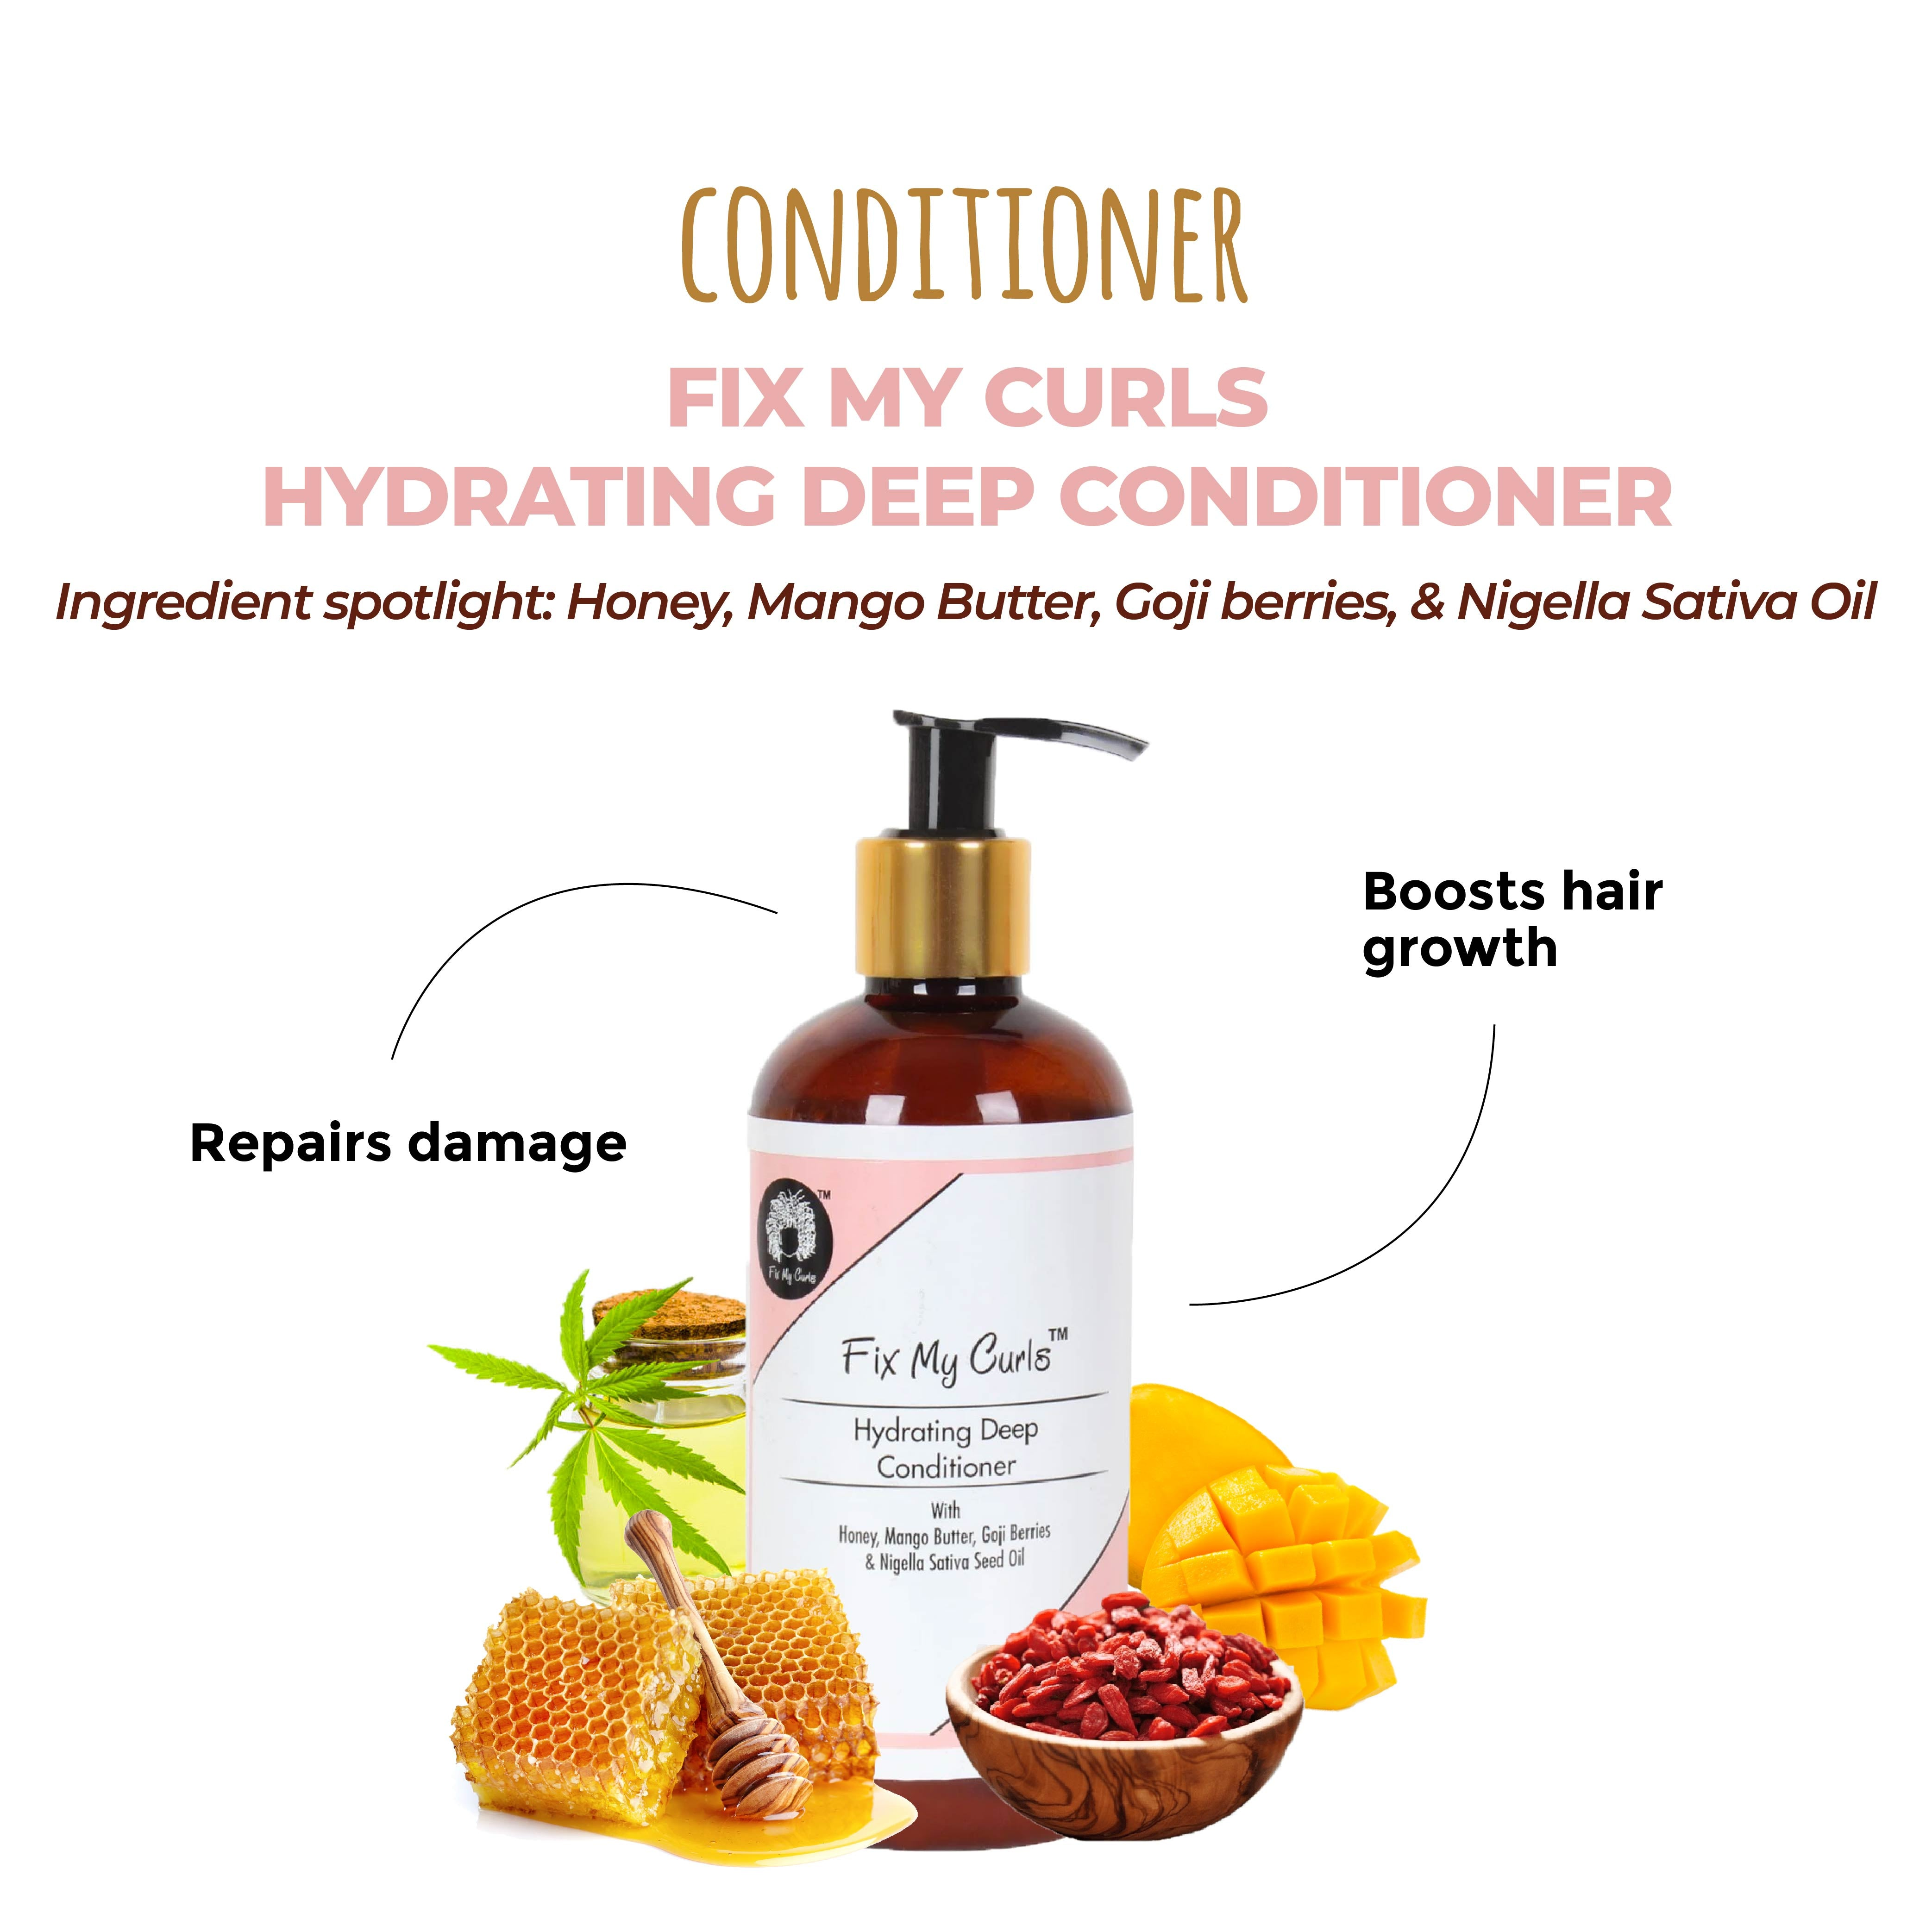 This is a link to the Fix My Curls Deep Hydrating Conditioner on www.sublimelife.in